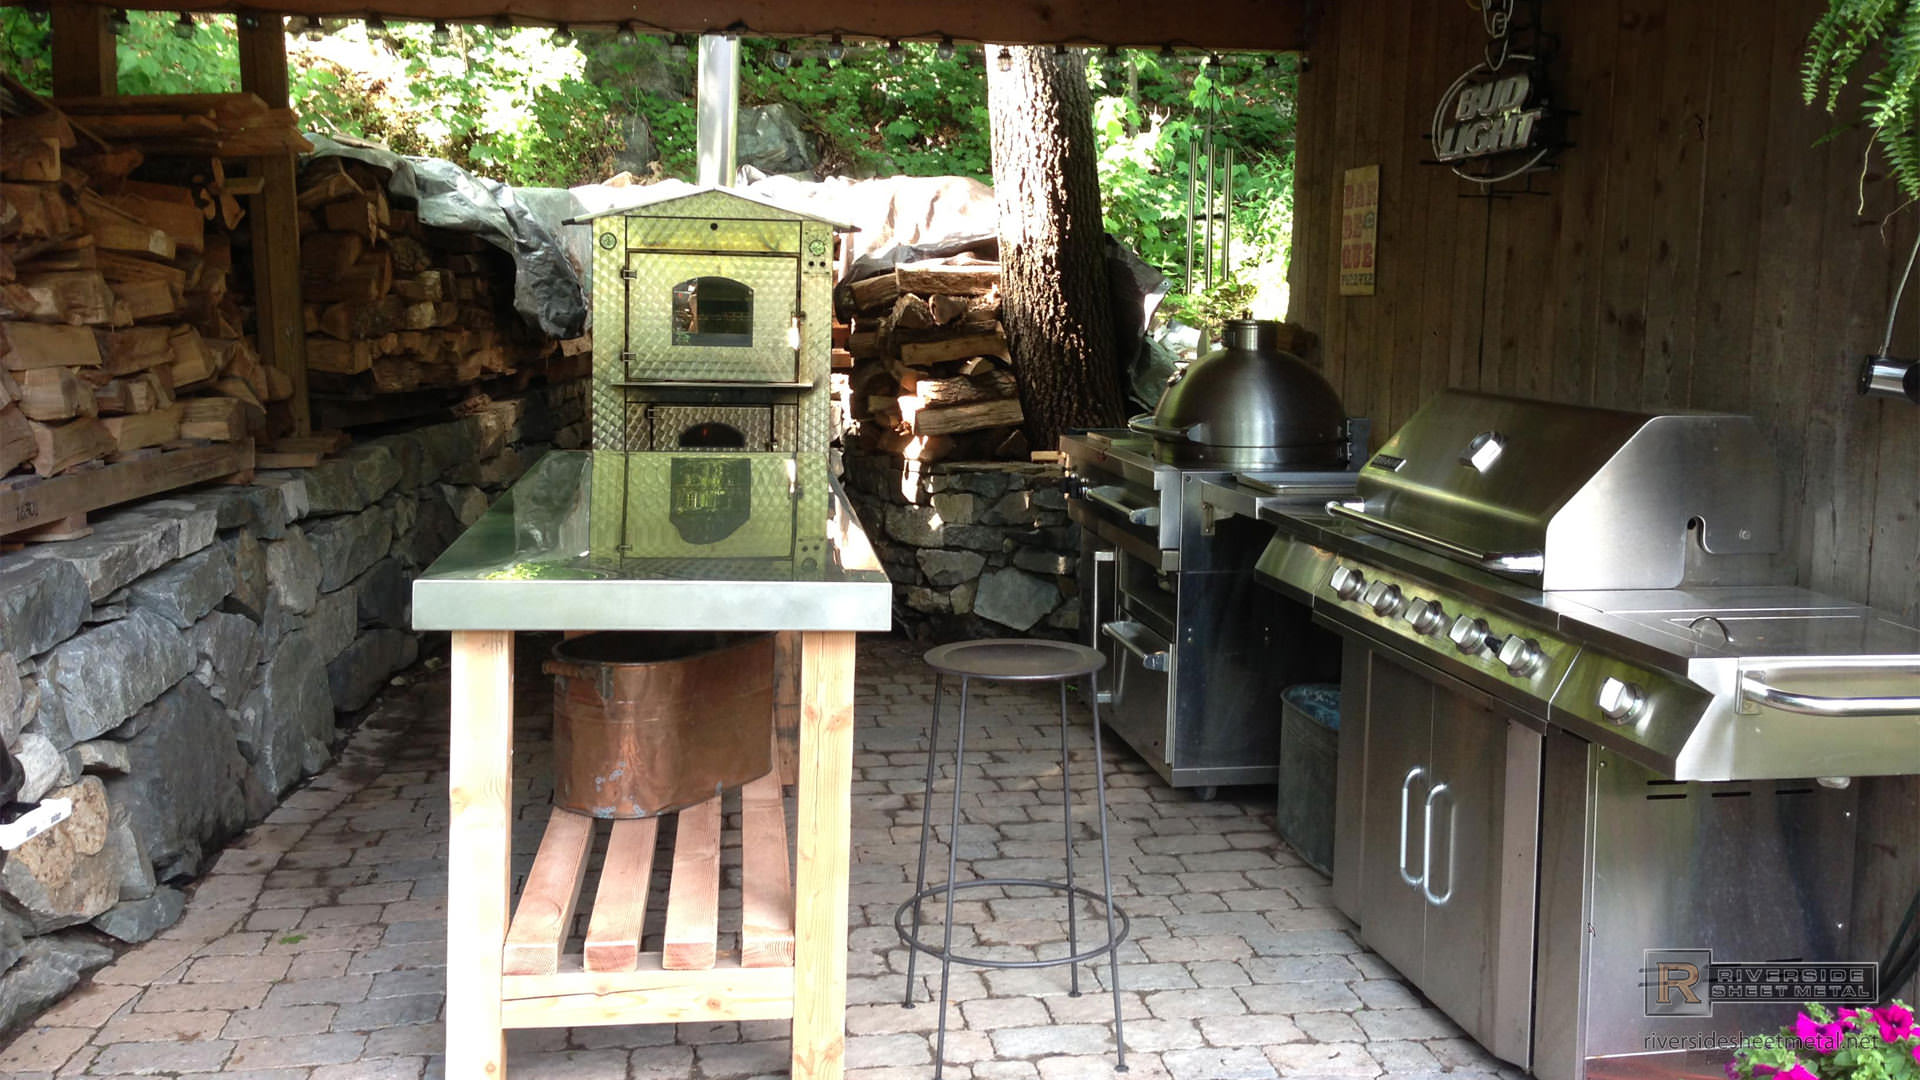 Stainless Steel Top For Outdoor Kitchen Massachusetts